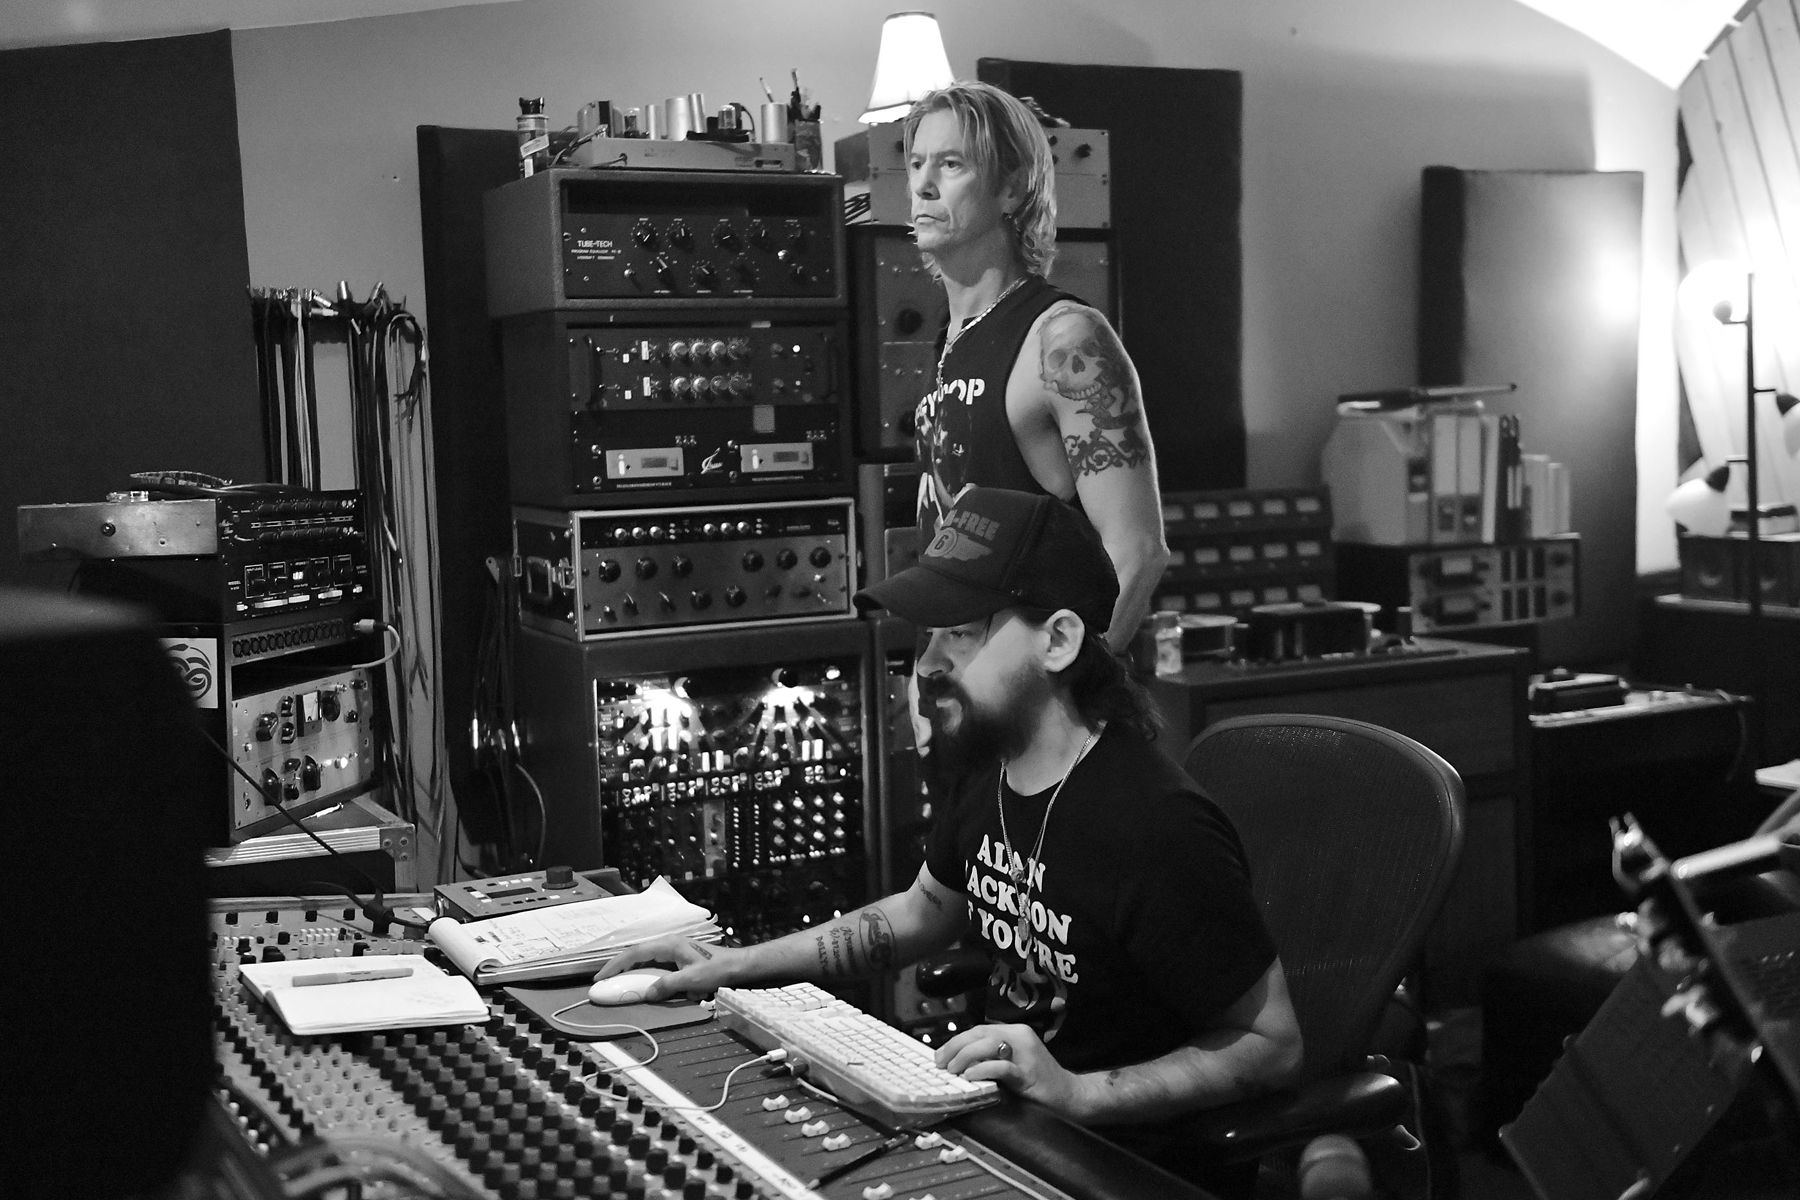 DUFF MCKAGAN ANNOUNCES 2019 SOLO ALBUM WITH PRODUCER SHOOTER JENNINGS 1